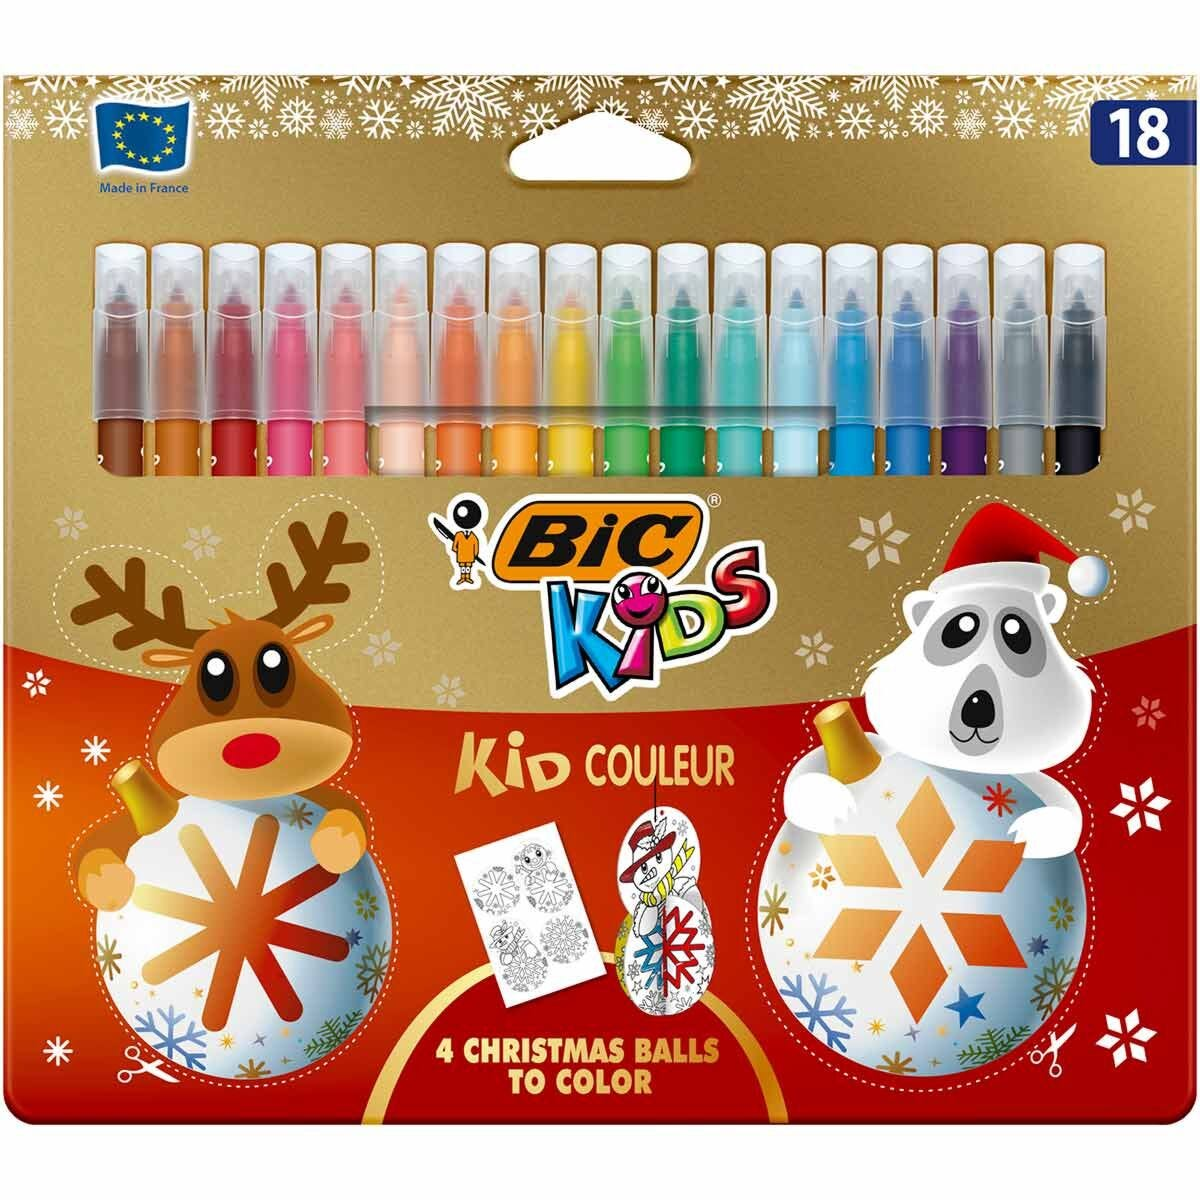 BiC Kids Couleur Colouring Felt Tip Pens Christmas Edition Pack of 18